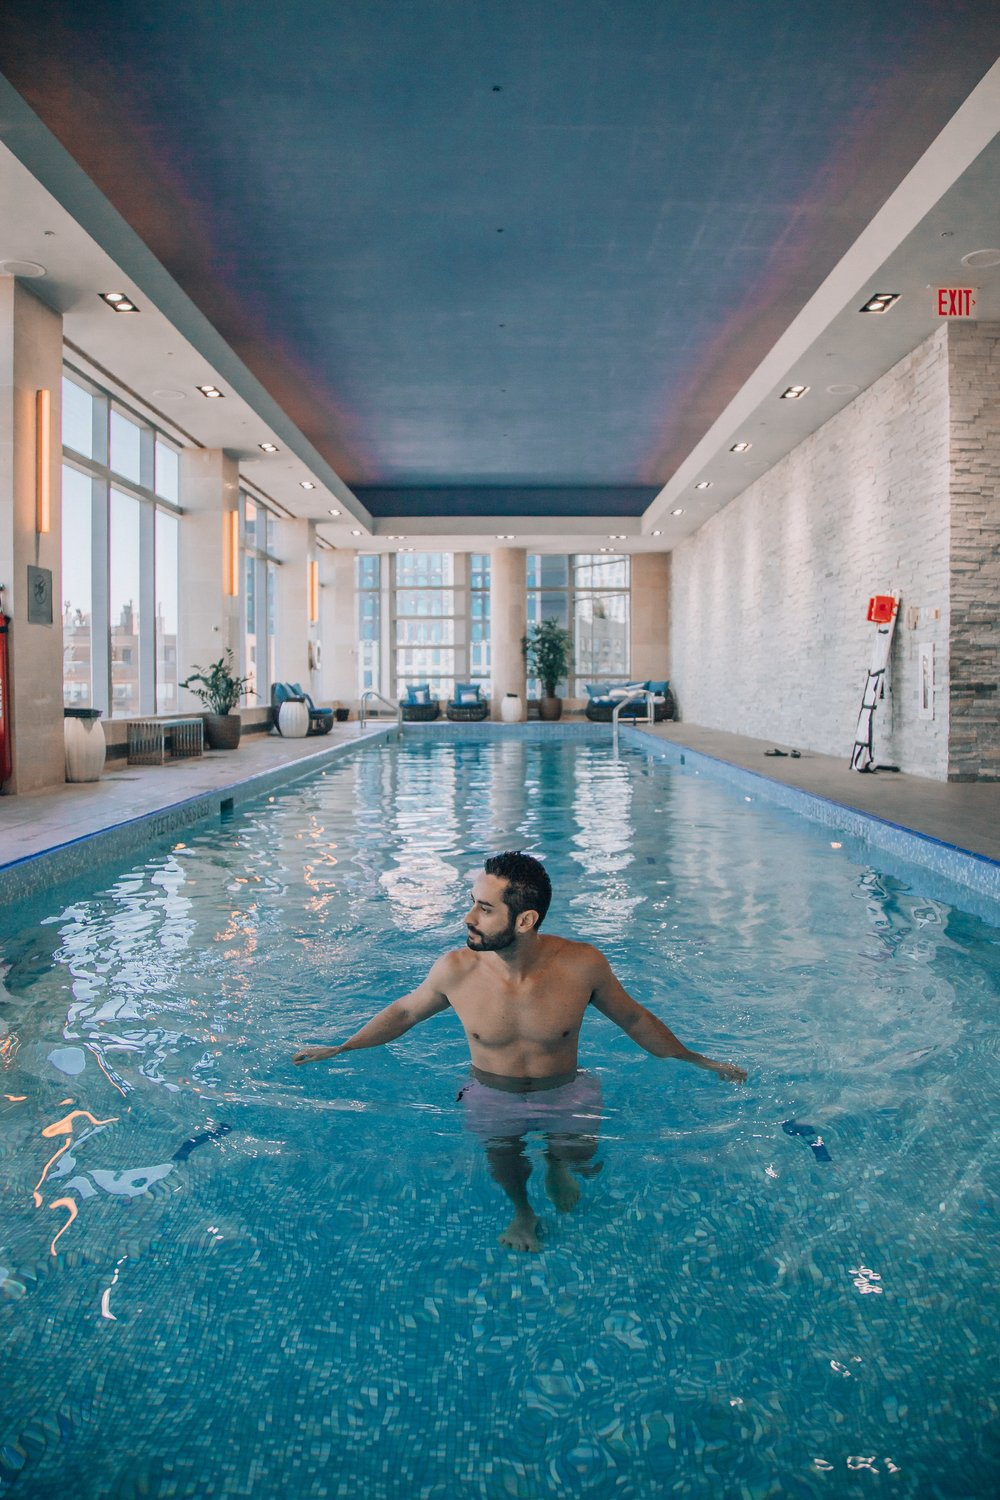 A pool in New York City is the ultimate luxury.   I enjoyed a quiet morning swim and workout at the gym on the same floor.